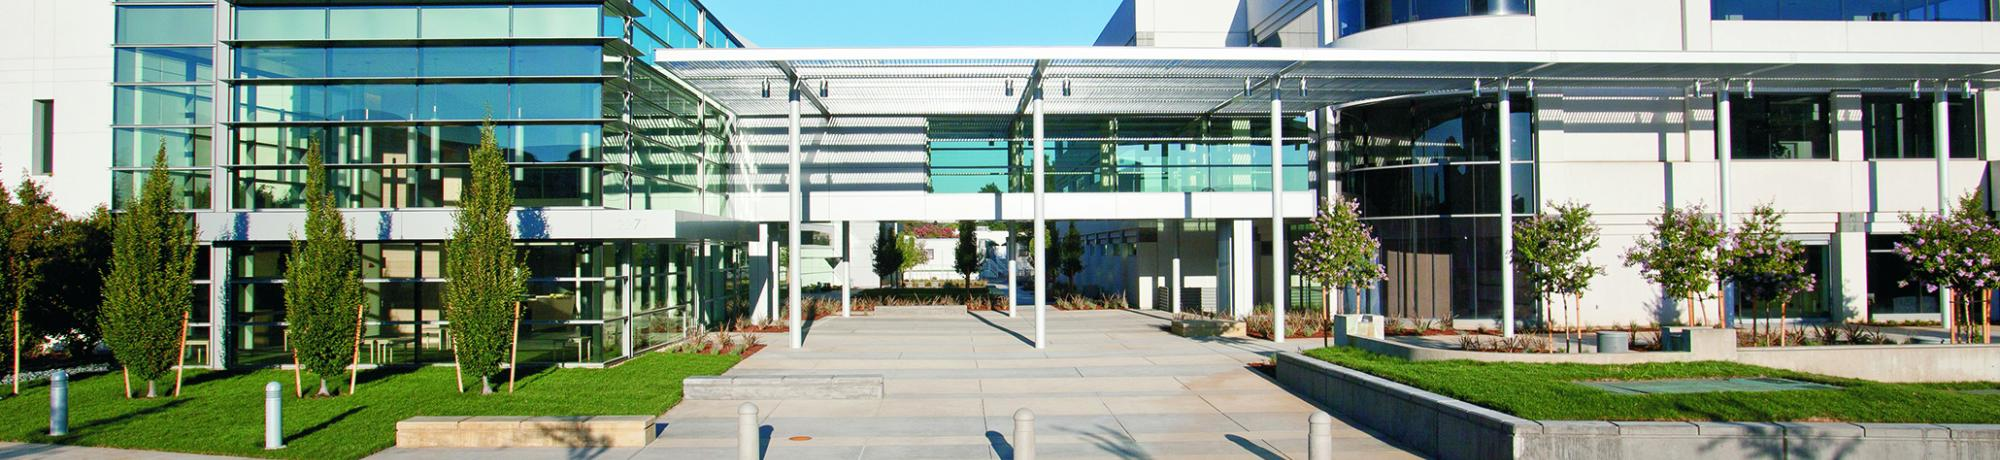 Image of the exterior of the UC Davis health Cancer Center building